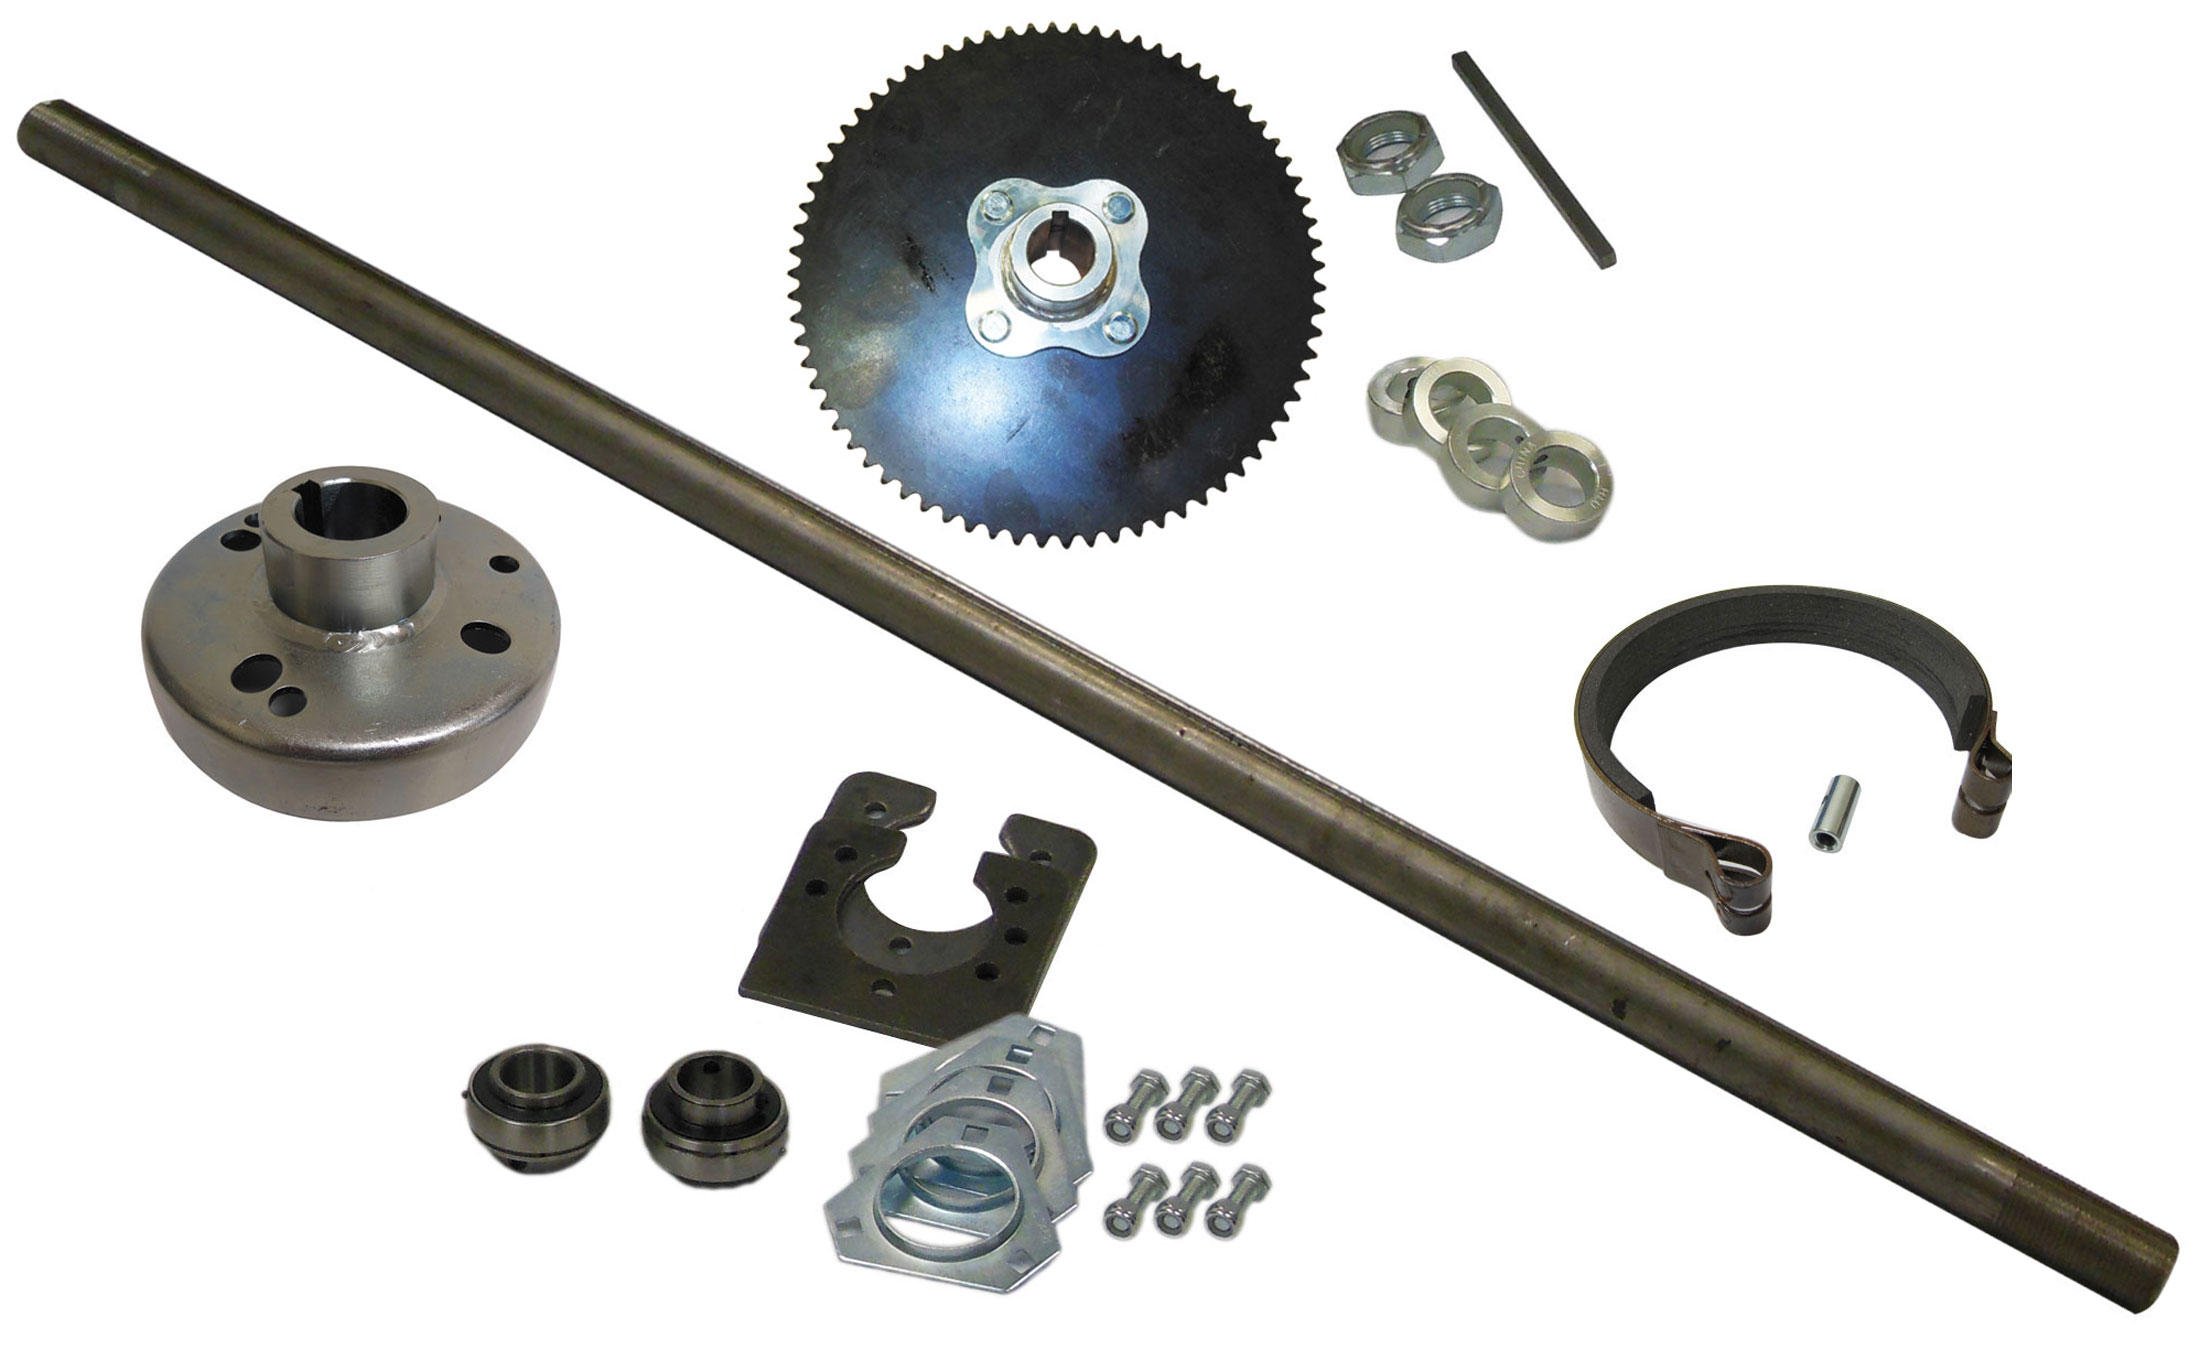 1 Live Go Kart Axle Kit 566235 Or 566105 Bmi Karts And Parts Rear Swingarm Diagram List For Manco Gokartminibikeparts Quick View